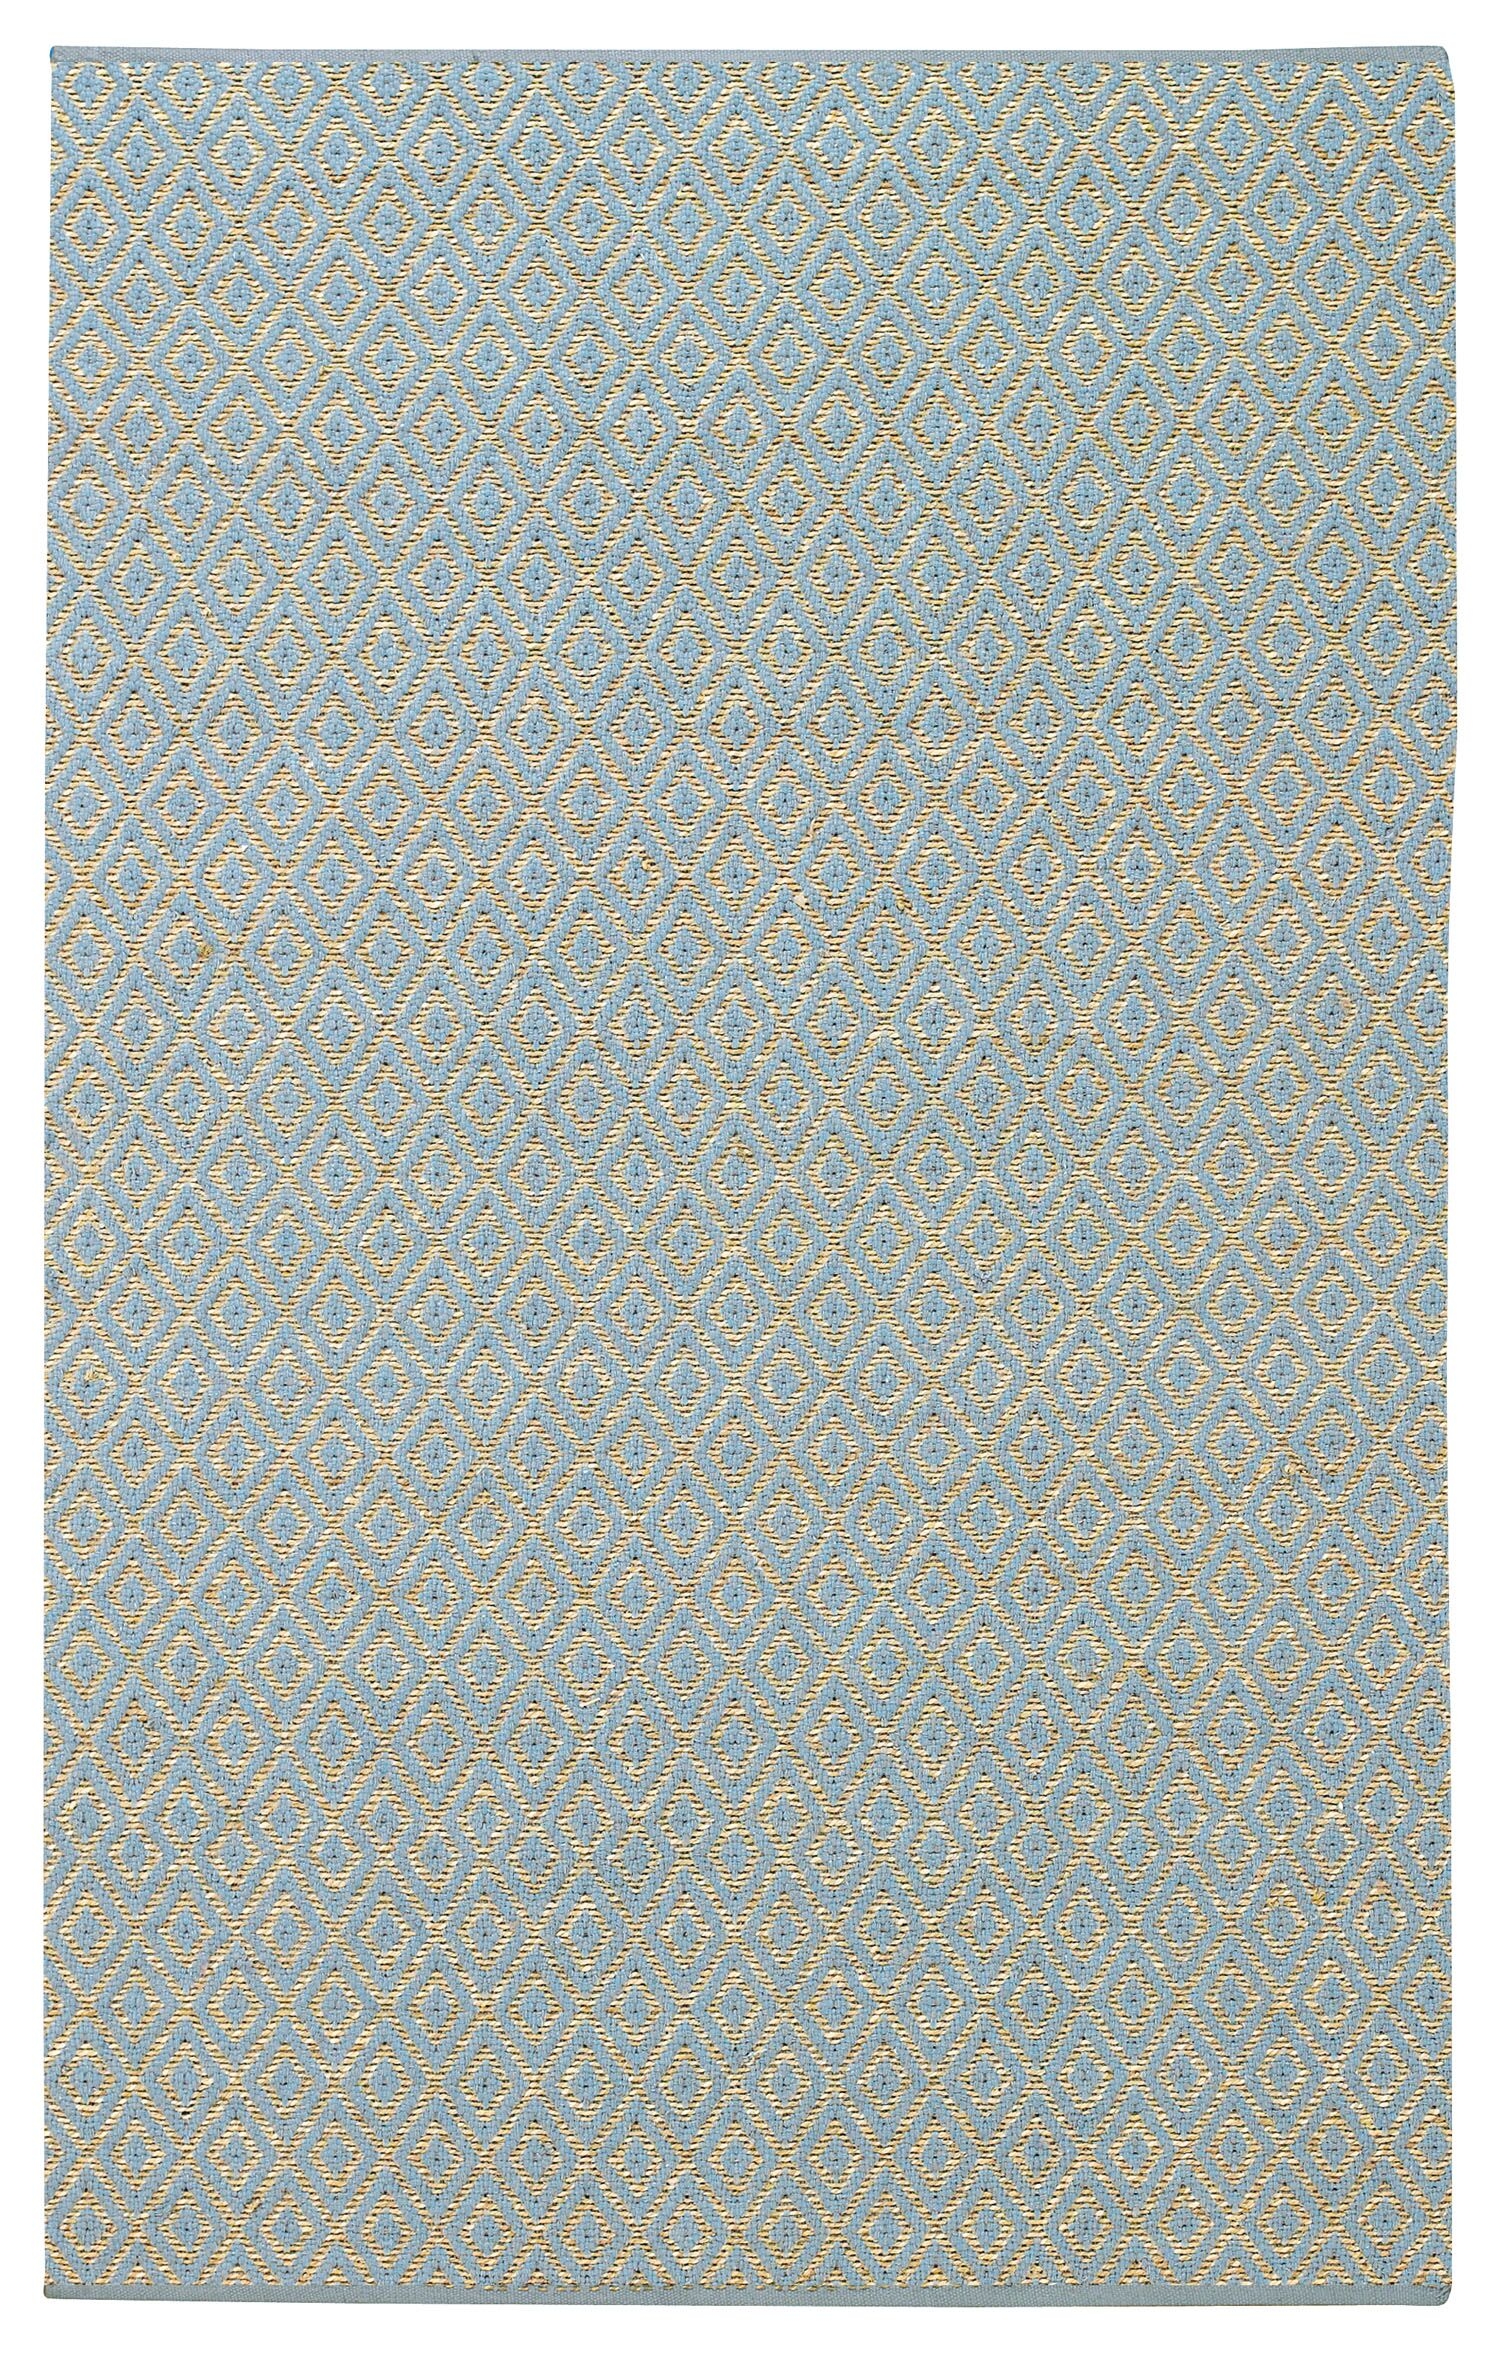 Blocher Blue Area Rug Rug Size: 3' x 5'